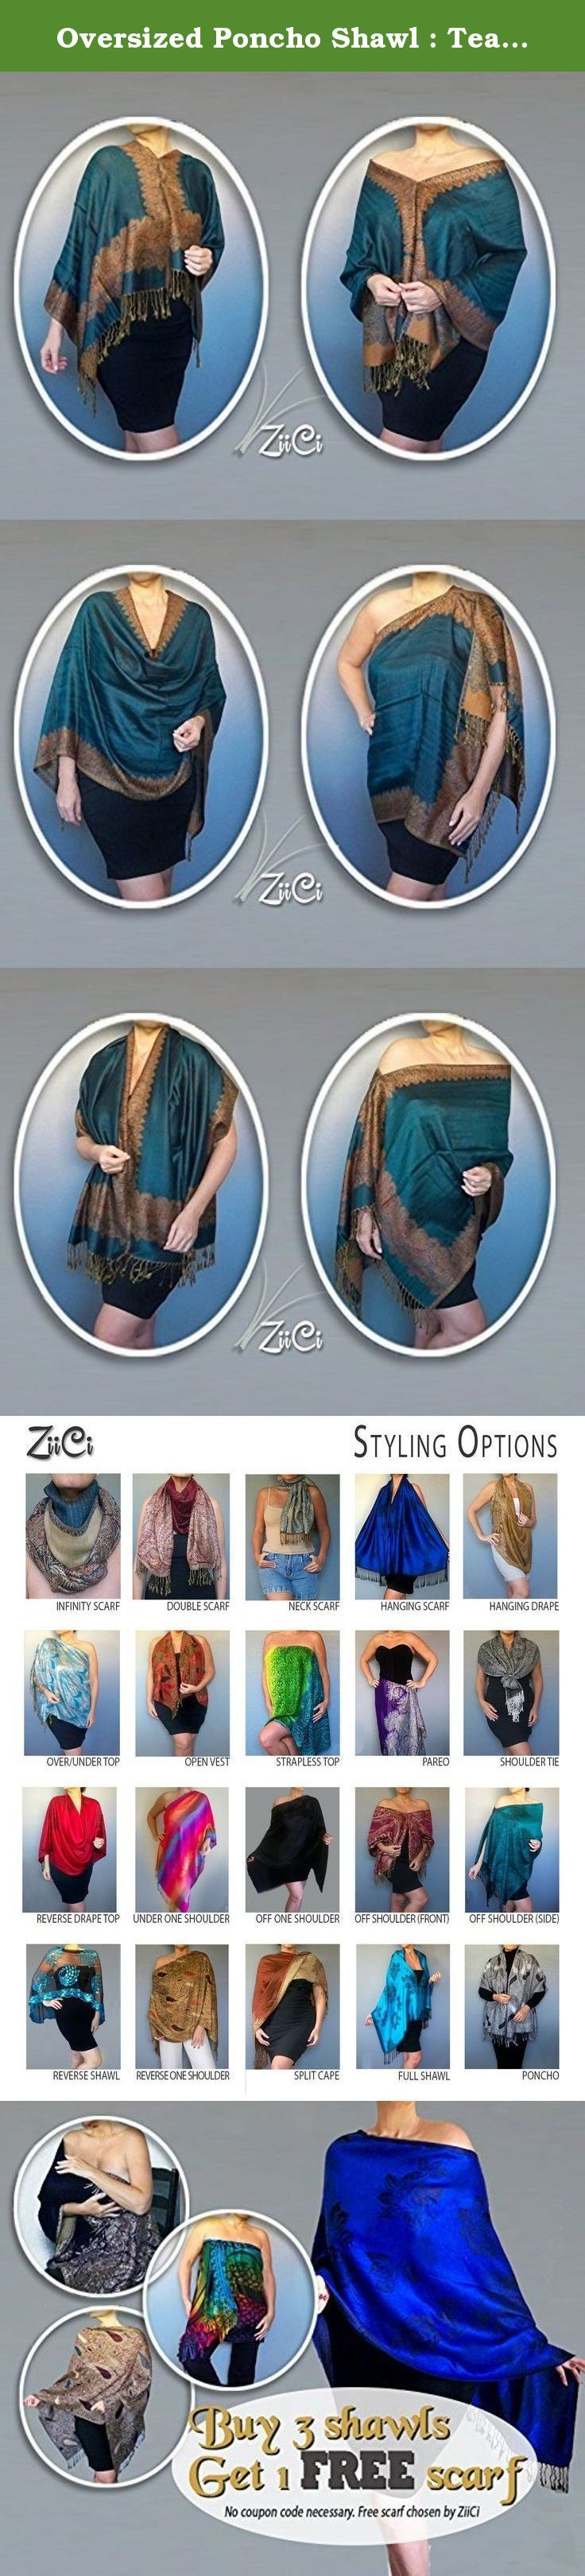 Oversized Poncho Shawl : Teal Pashmina Top : Golden Brown Scarf Wrap By ZiiCi. This teal poncho shawl features a rich hue wrapped in casual comfort. ZiiCi shawls have a unique adjustable elastic neckline that allows you to wear them dozens of ways without any tying or pinning. Just pull the inner cord lock and in an instant you've got a whole new outfit. This year-round product can be worn as a stole, tunic, pashmina scarf, halter top, poncho, swimsuit cover up and more. COLOR: This is a...